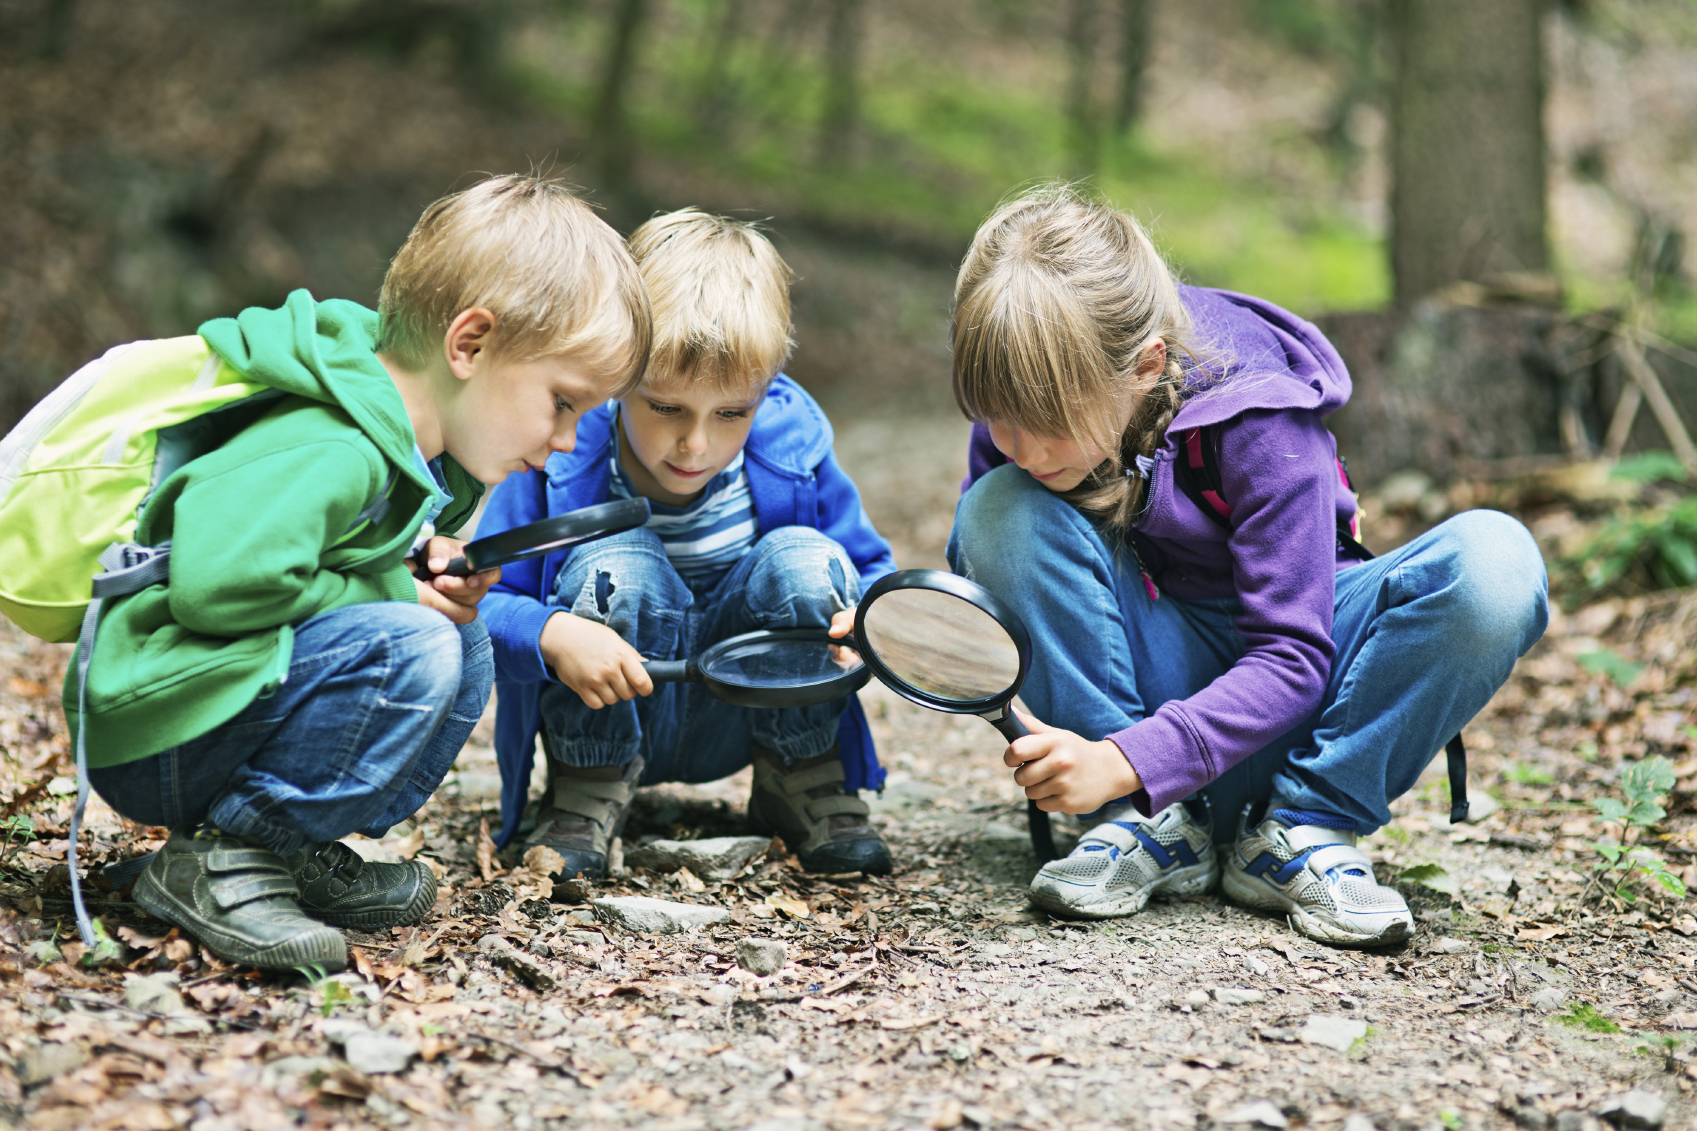 stem children education early engaging natural